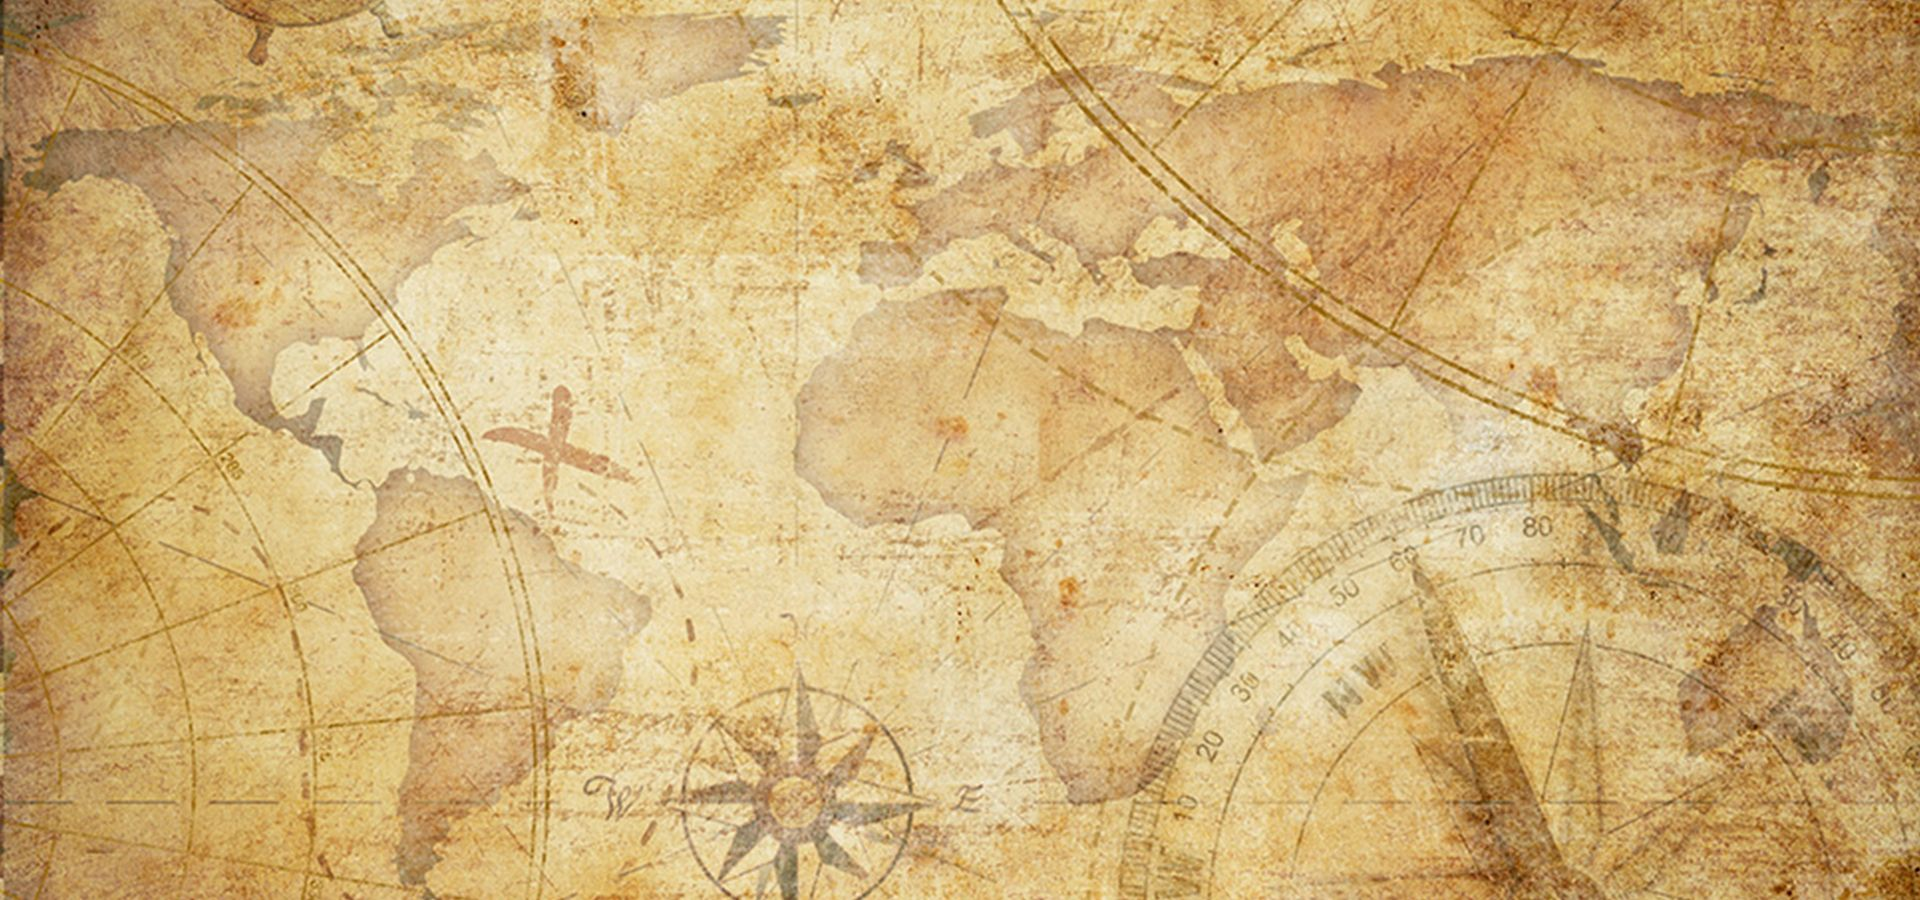 Simple Texture Texture Map Treasure Maps Map Background Illustrated Map